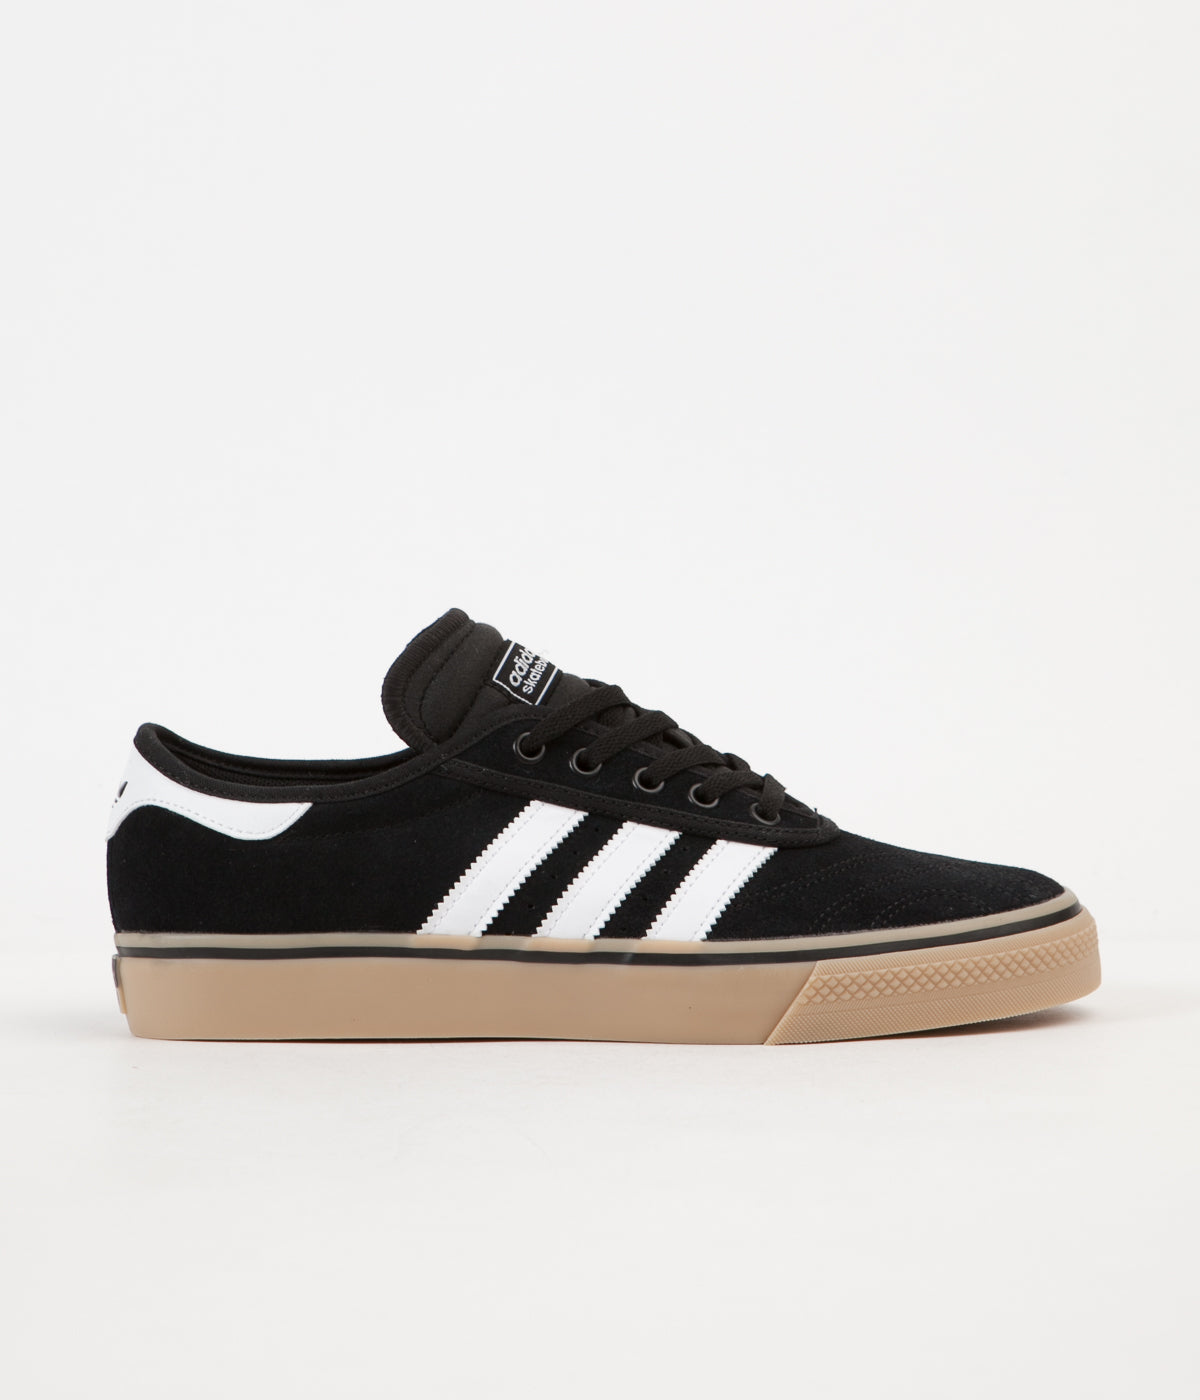 separation shoes 20cde 40049 ... Adidas Adi-Ease Premiere Shoes - Core Black  White  Gum ...